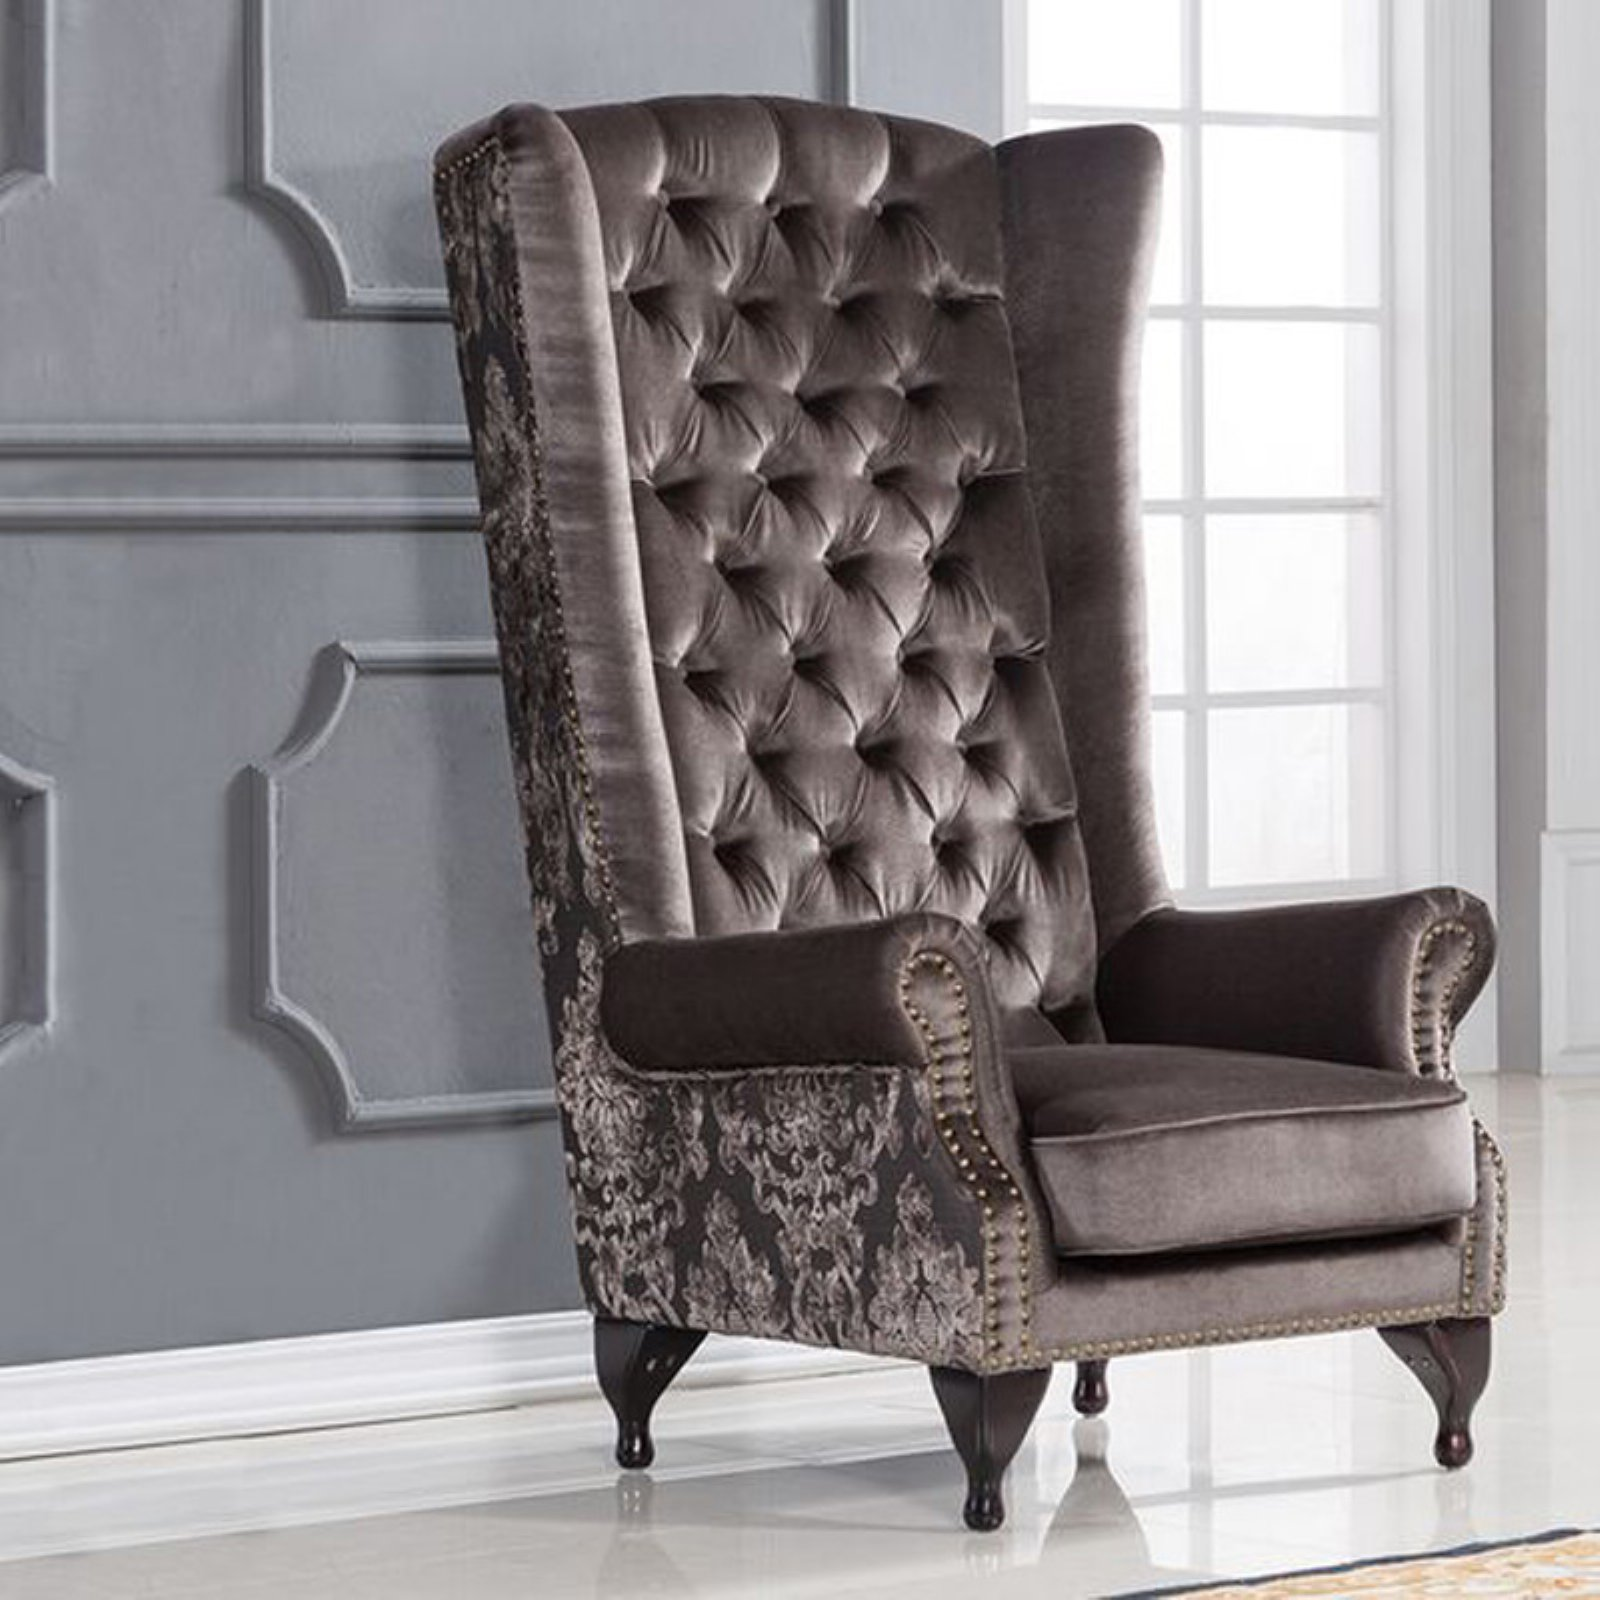 Magnificent American Eagle Furniture Pennington Tufted High Back Accent Onthecornerstone Fun Painted Chair Ideas Images Onthecornerstoneorg